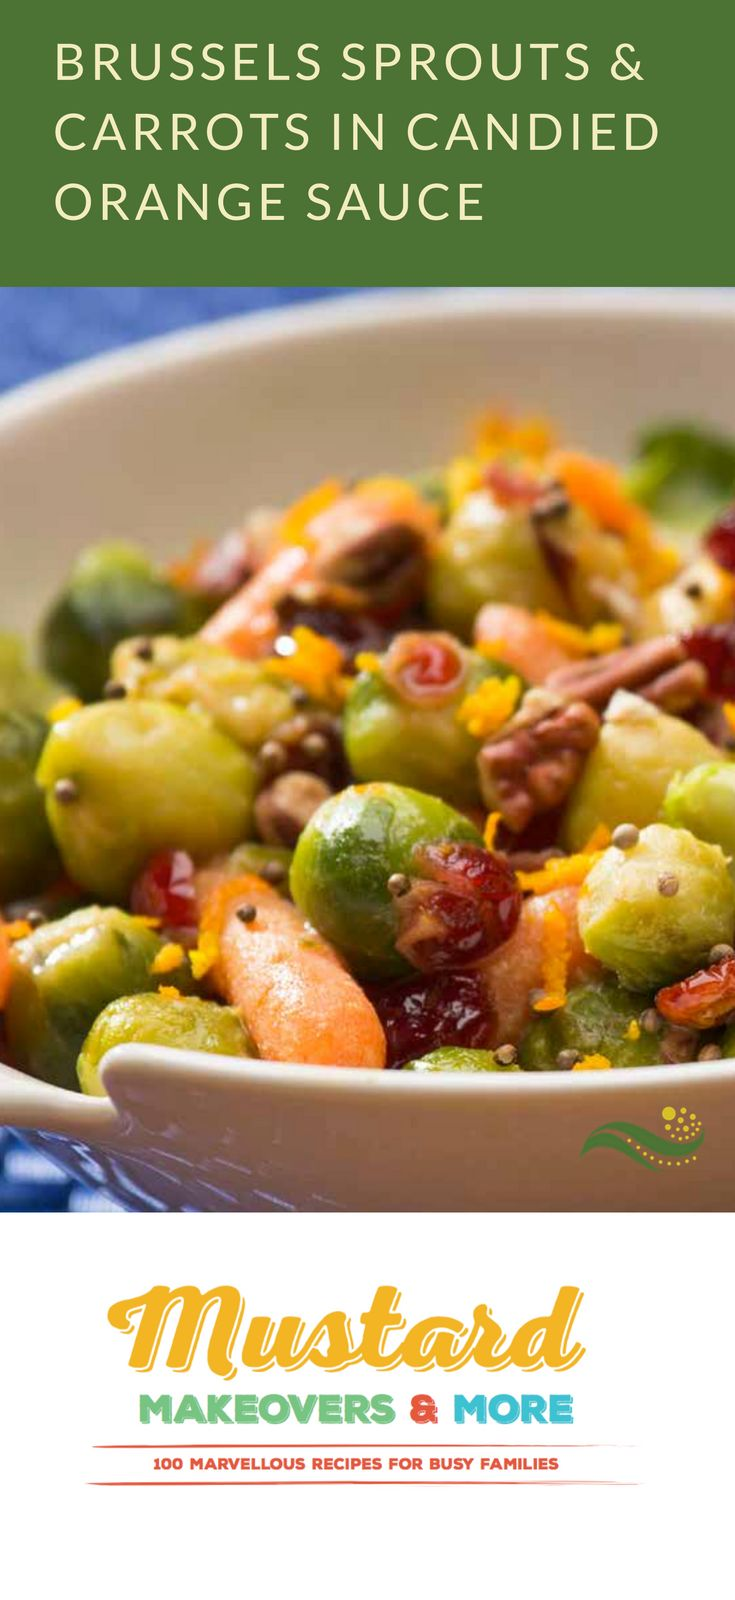 Brussels Sprouts & Carrots in Candied Orange Sauce from Mustard Makeovers & More